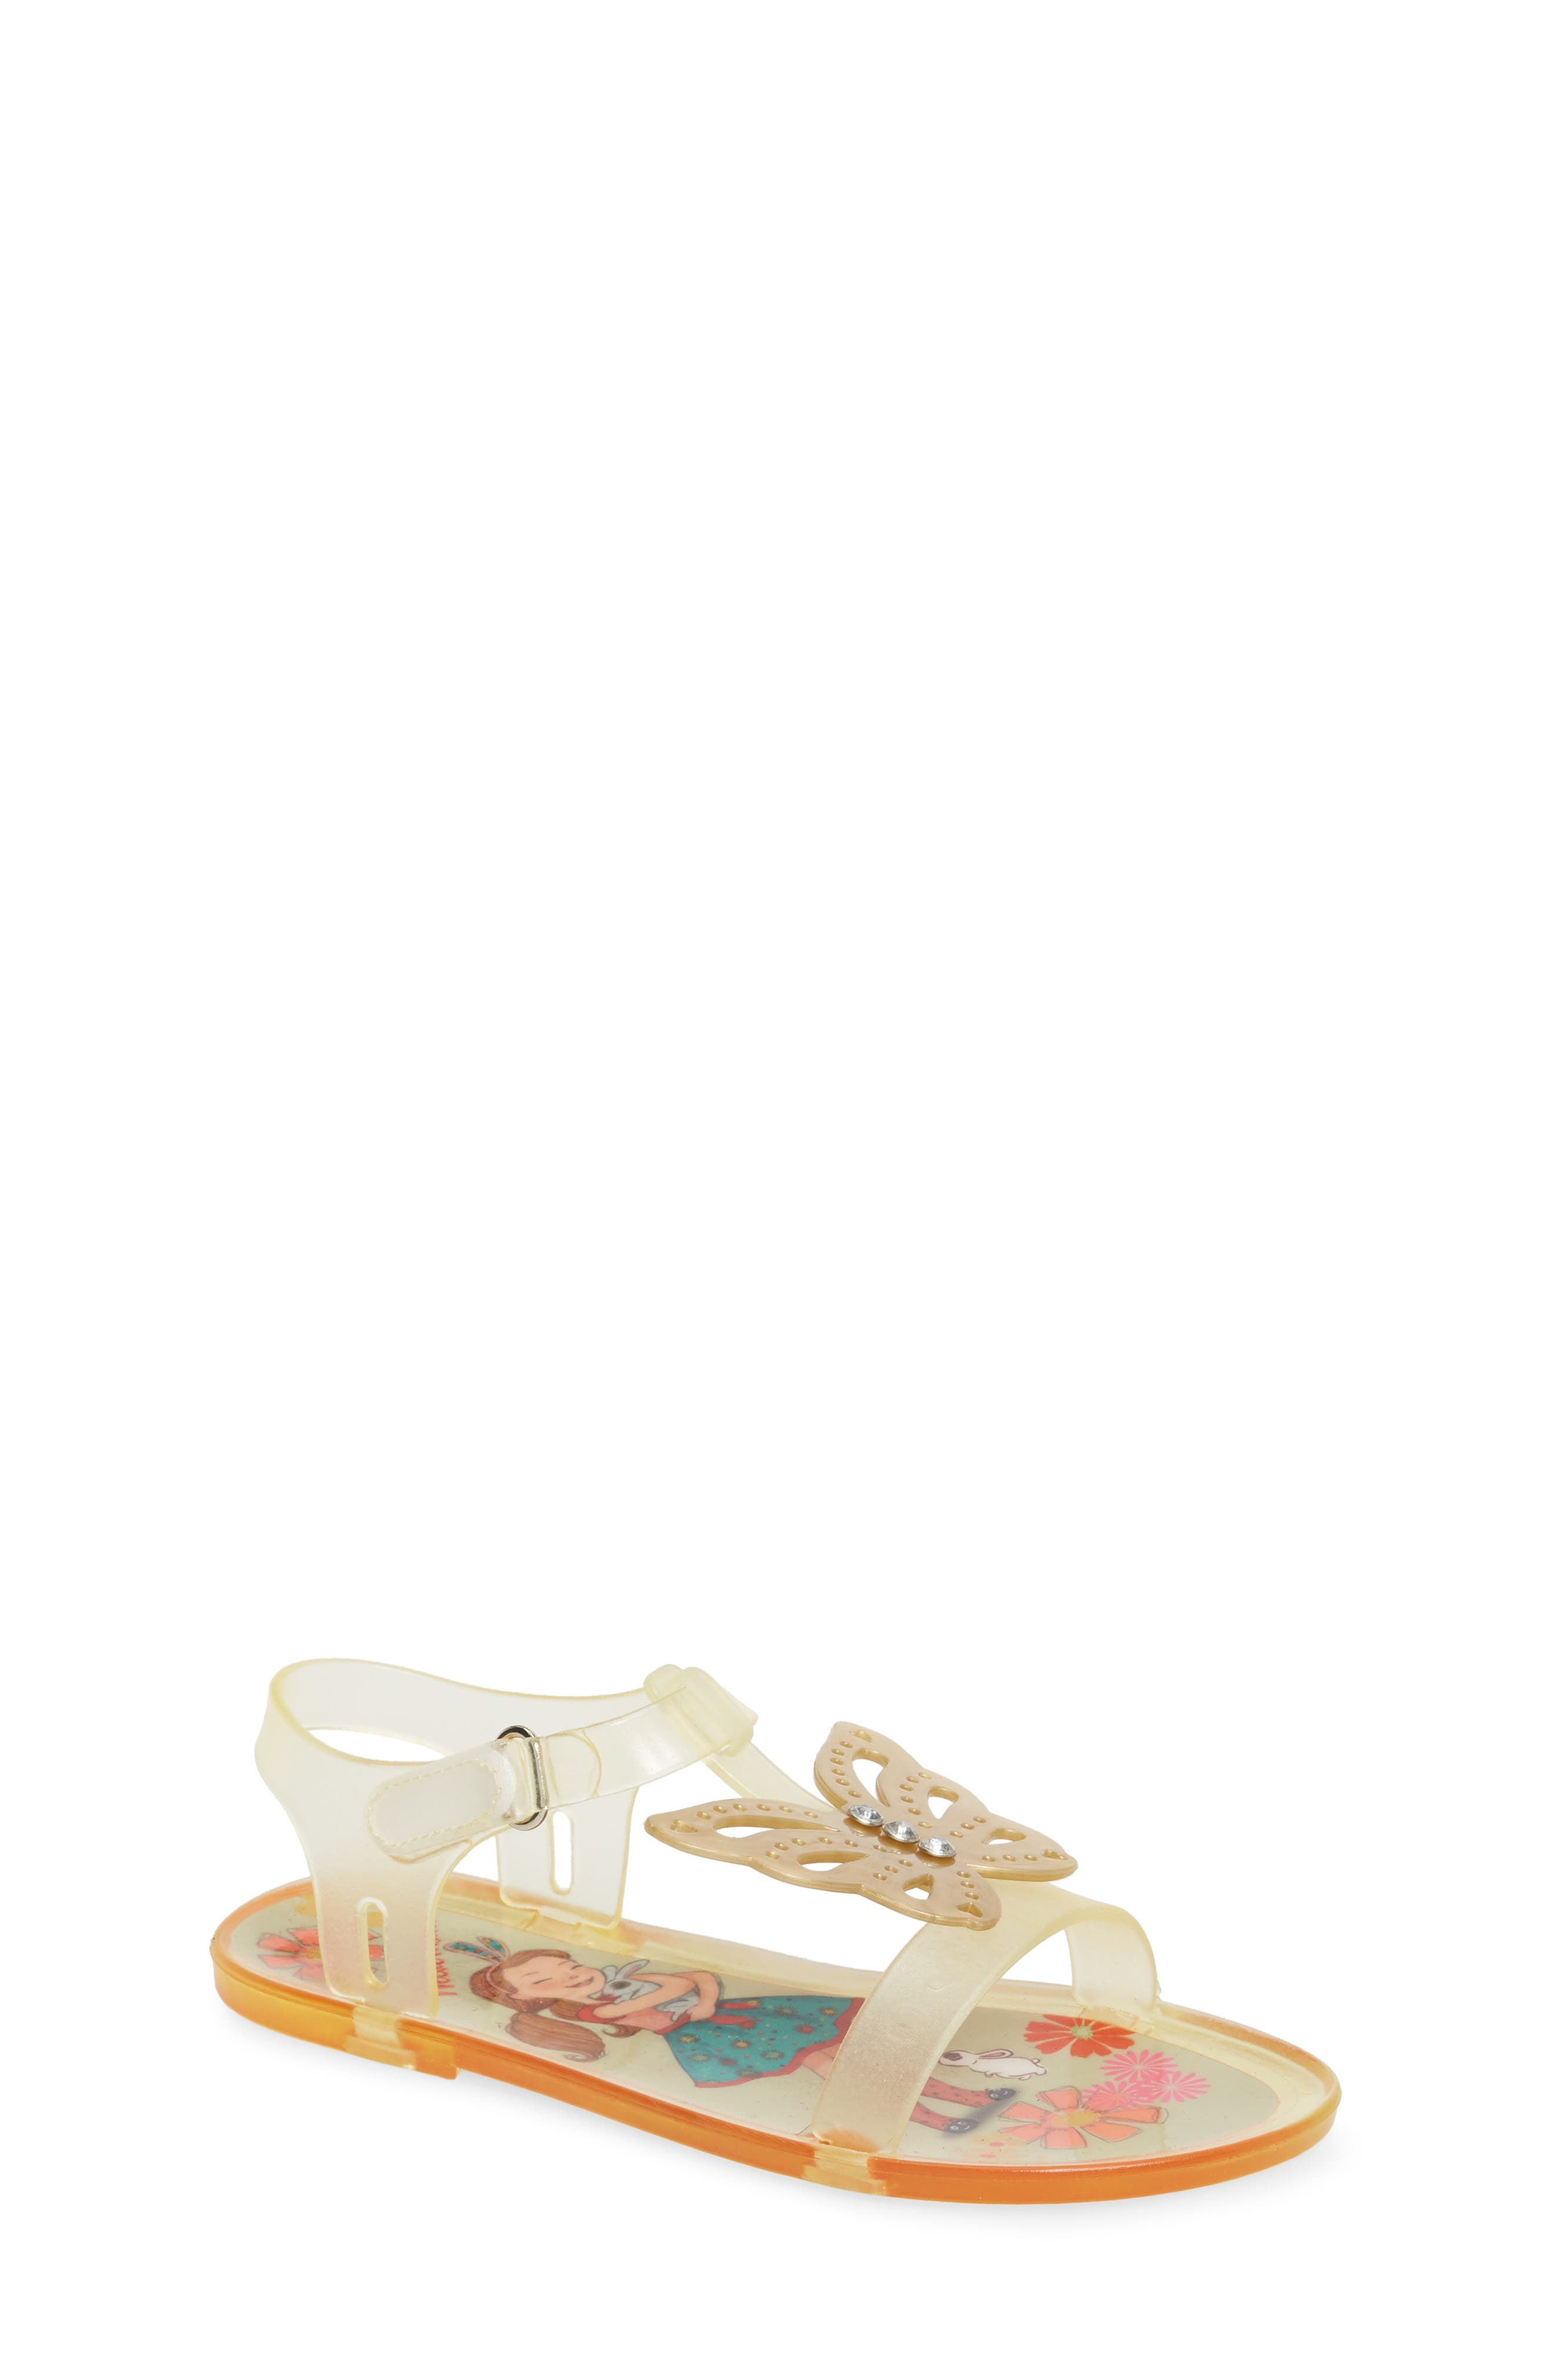 Willa Butterfly Jelly Sandal,                         Main,                         color, Gold